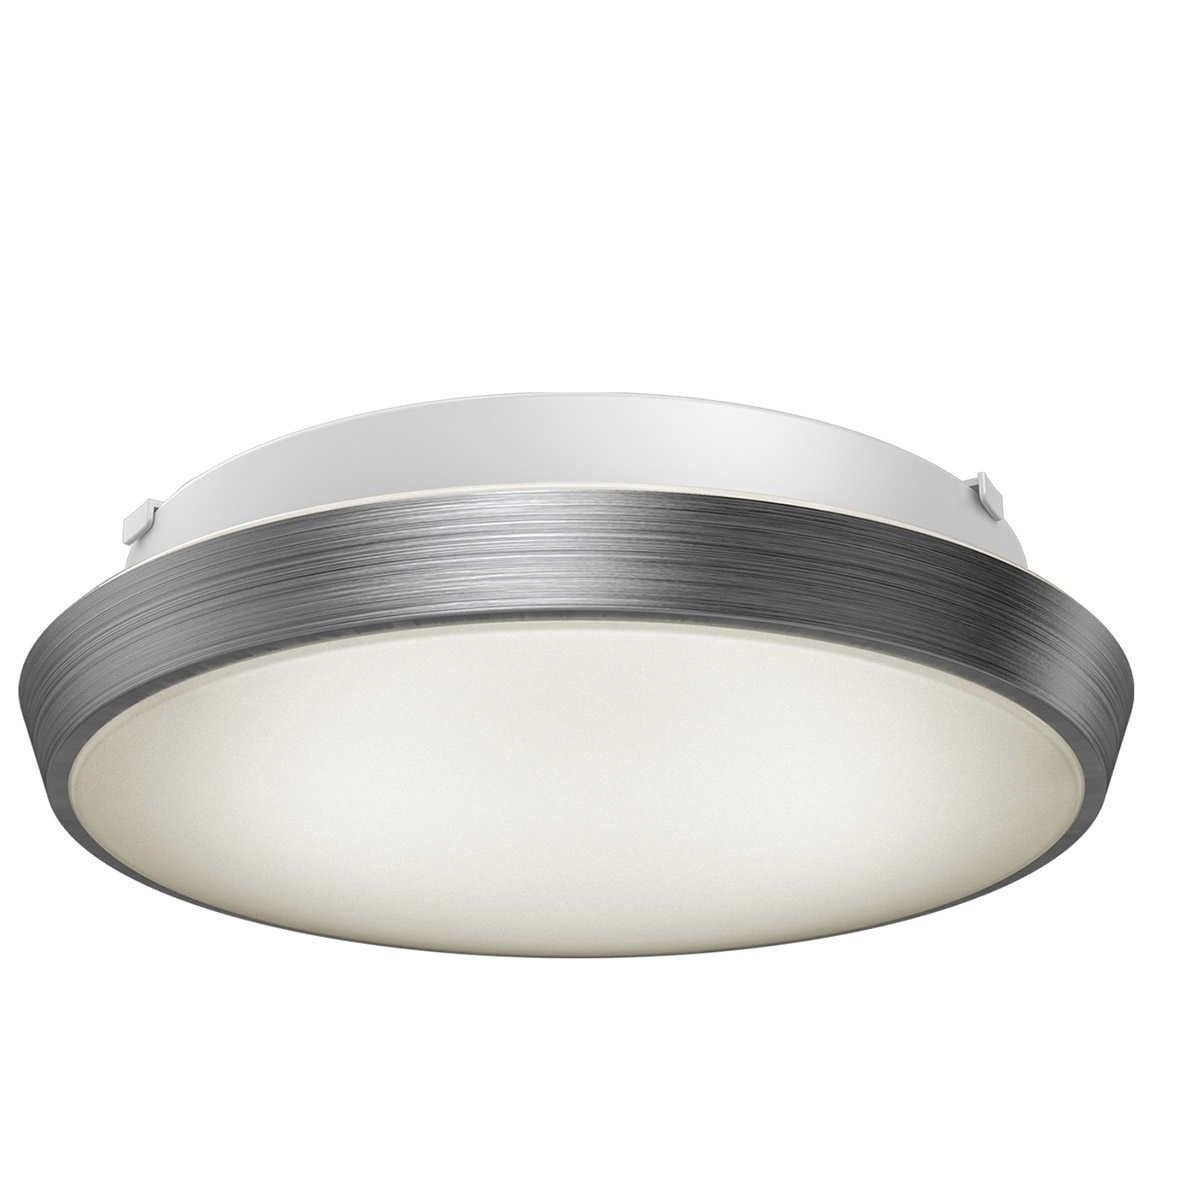 Artika skyraker ceiling led light silver dimmable 25watt ip44 warm white aluminium 25 w energy class a